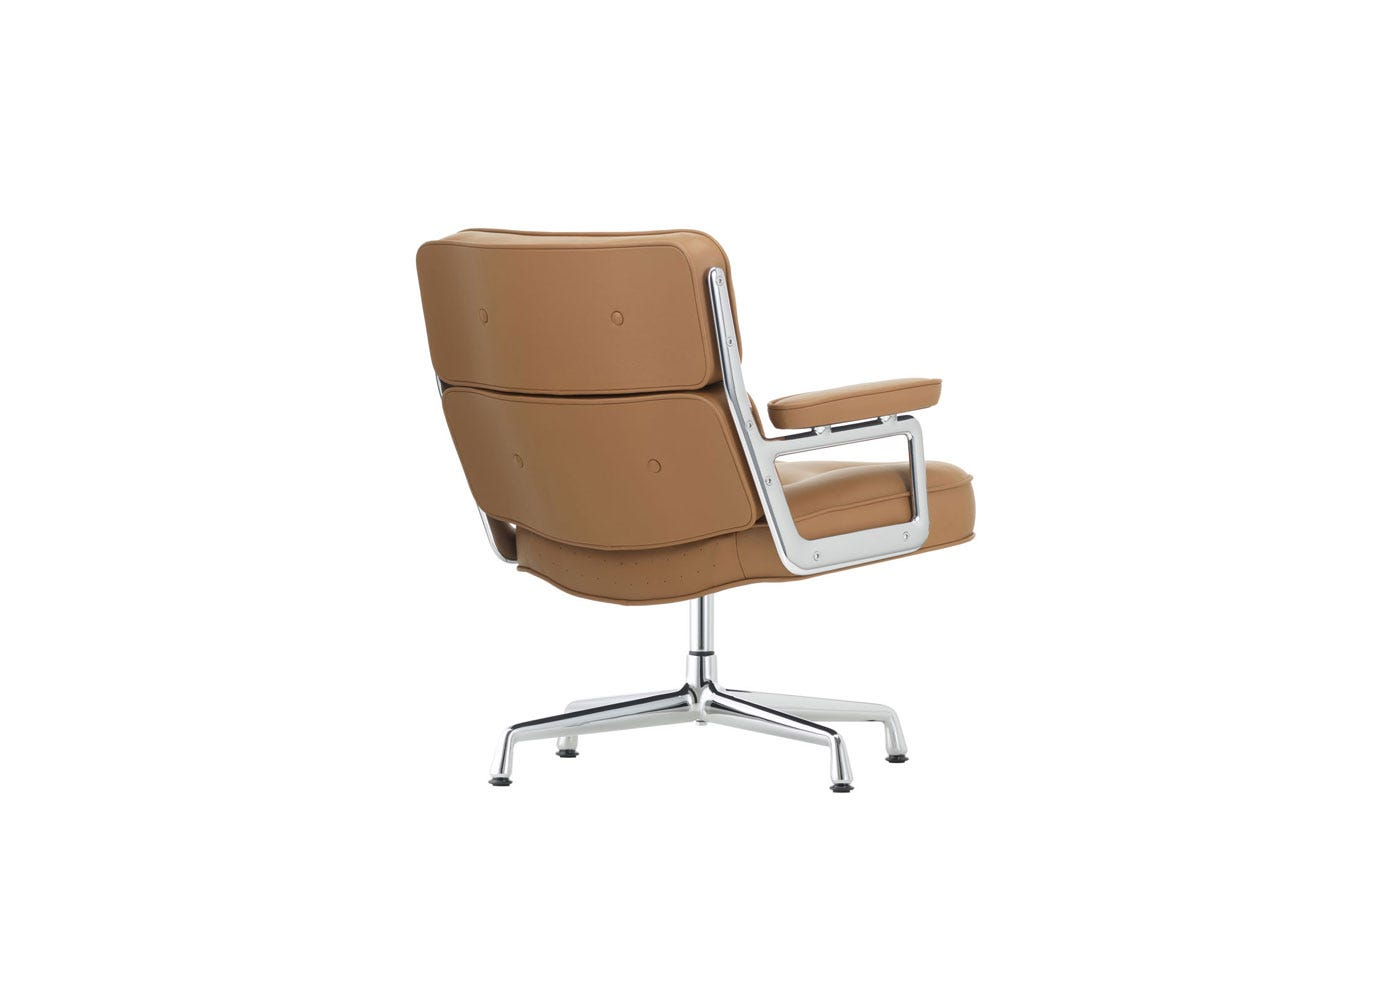 As Shown: Lobby Swivel Chair 105 With Armrests Back